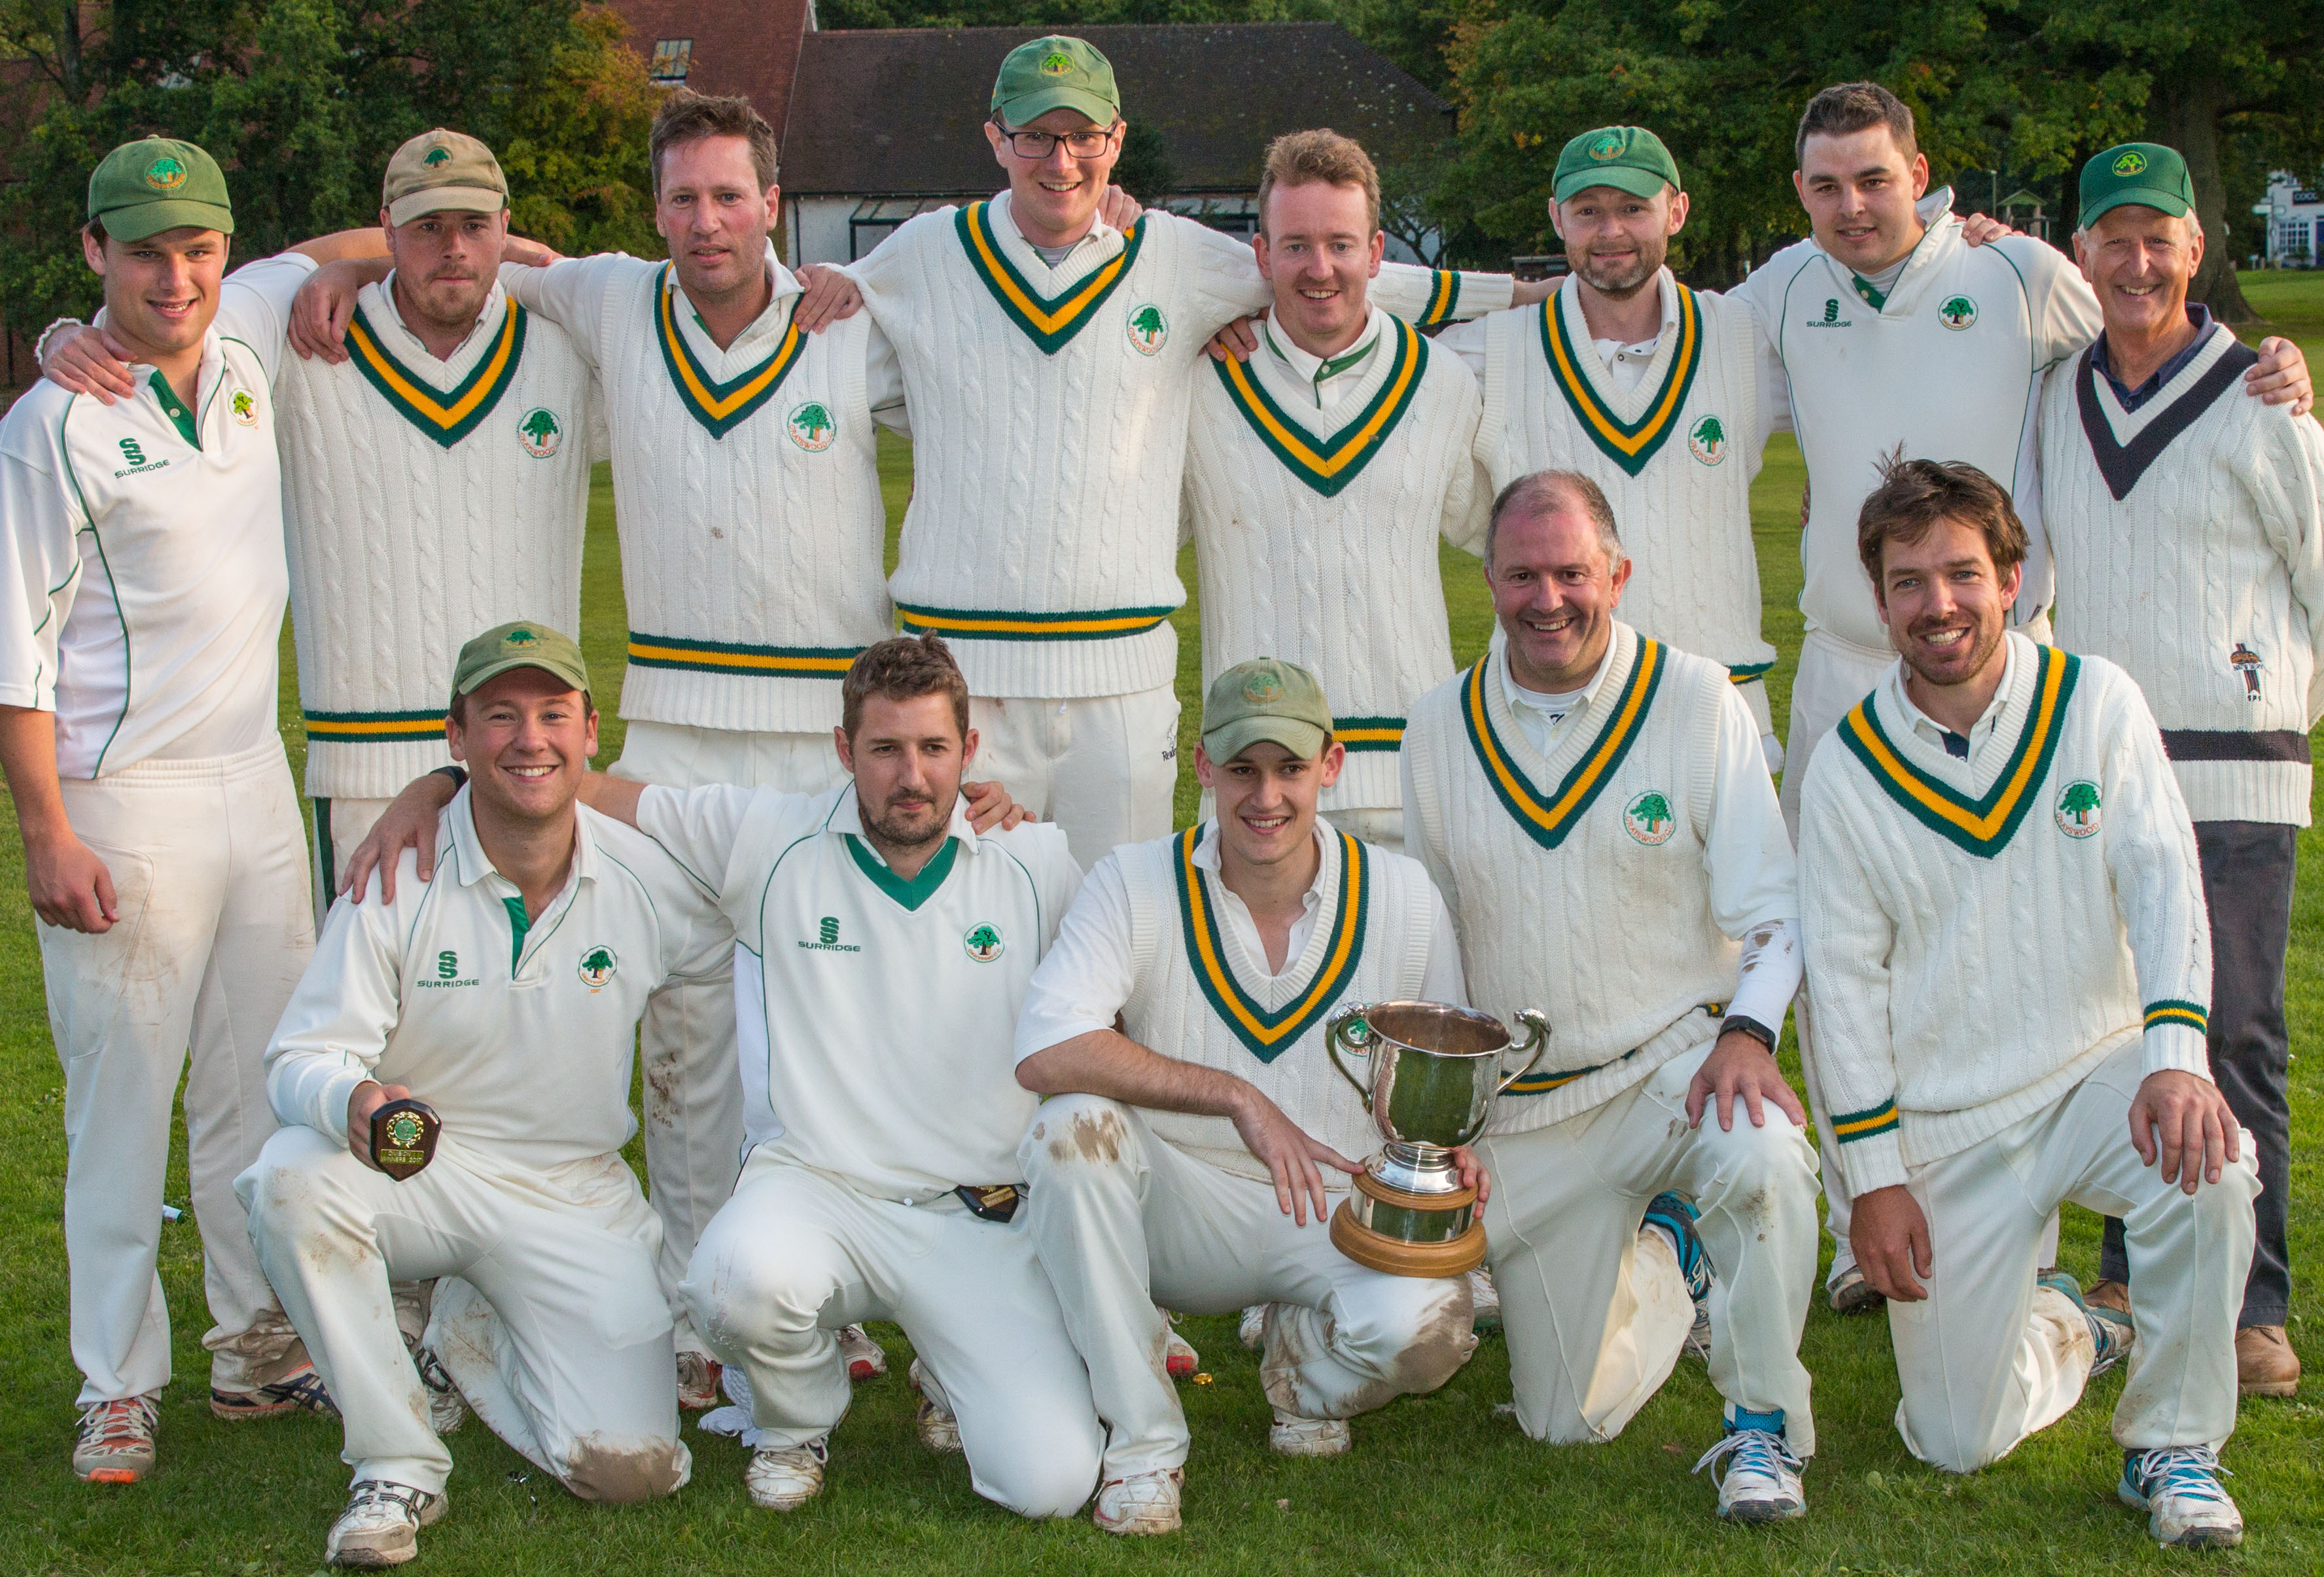 2nd XI is 2016 I'Anson Division IV Champions